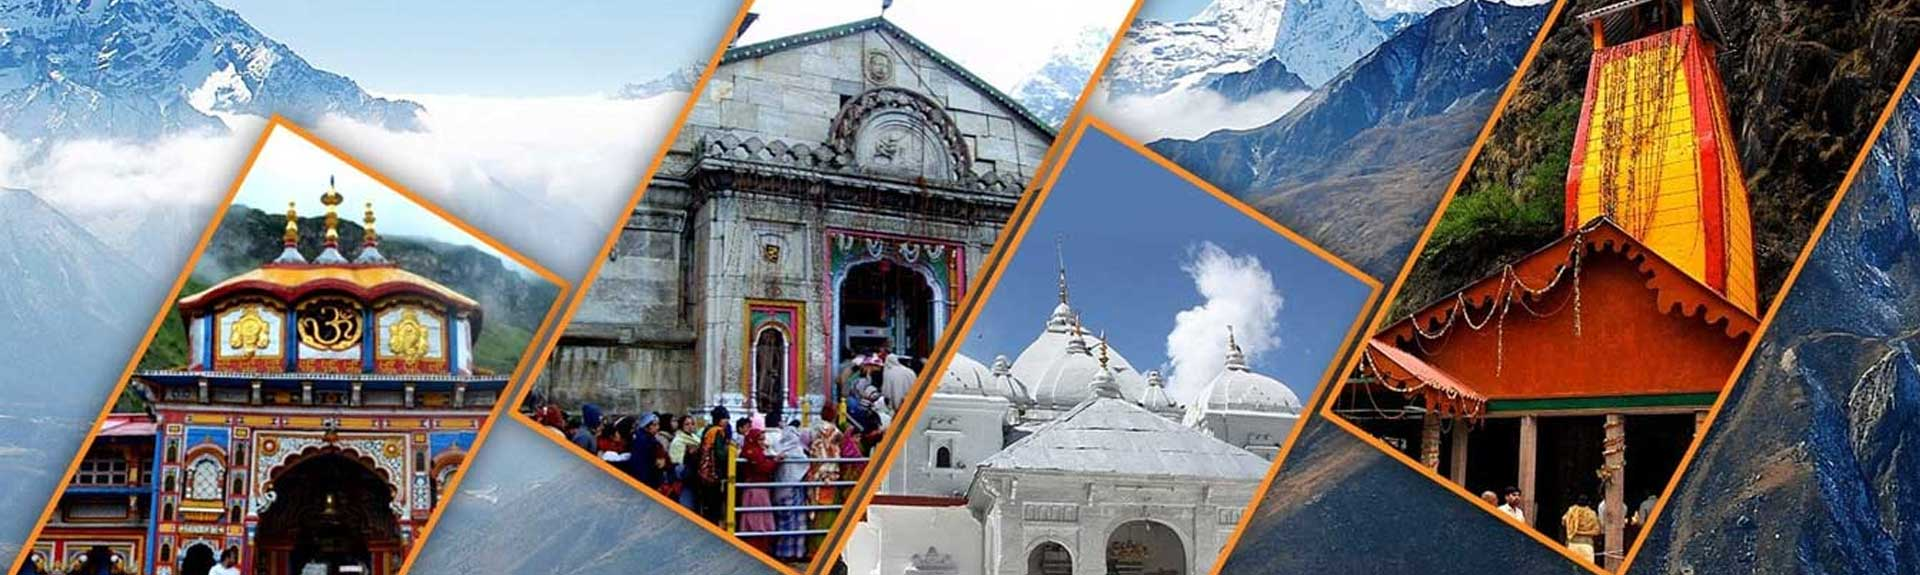 Car Rental Rates for Chardham Yatra